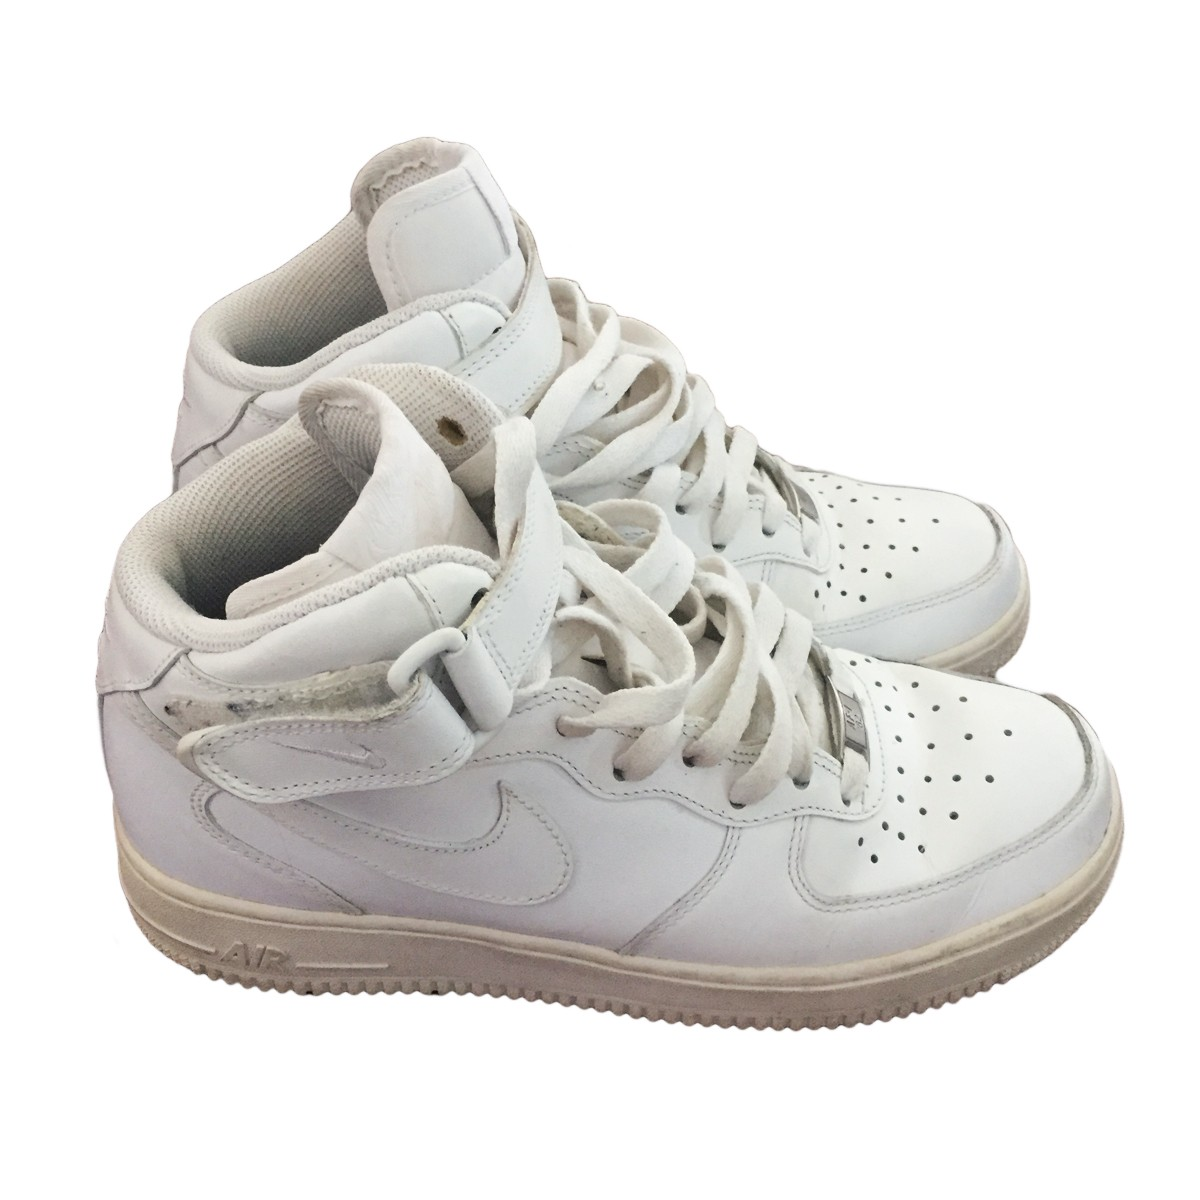 6abba23158d5c NIKE AIR FORCE white leather for ladies US 7 | My good closet